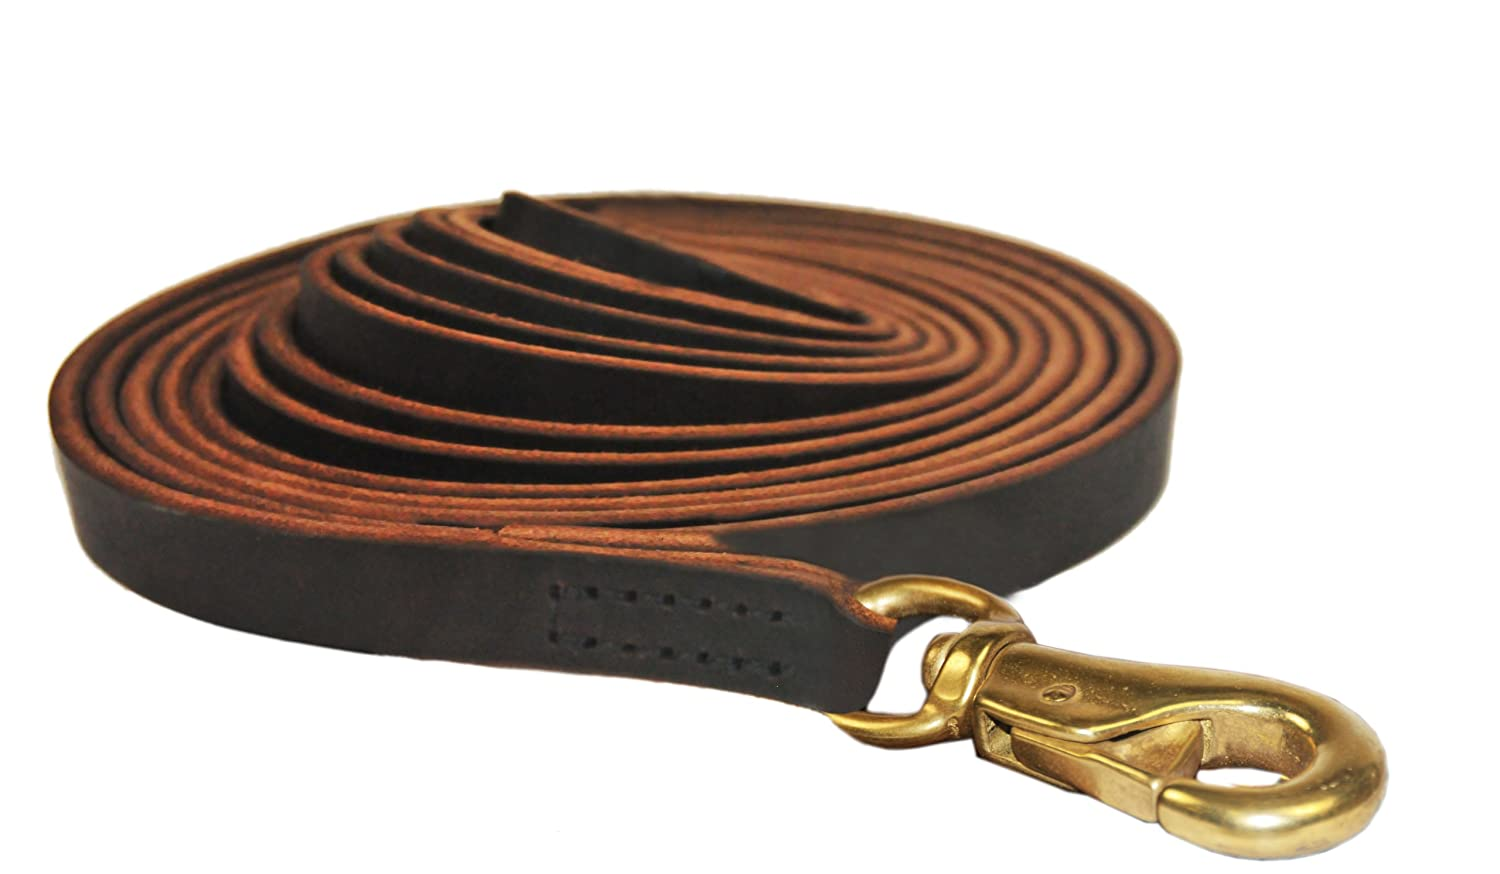 Dean and Tyler Stitched Track Dog Leash, Brown 135-Feet by 3 4-Inch Width with Handle And Massive Brass Hardware